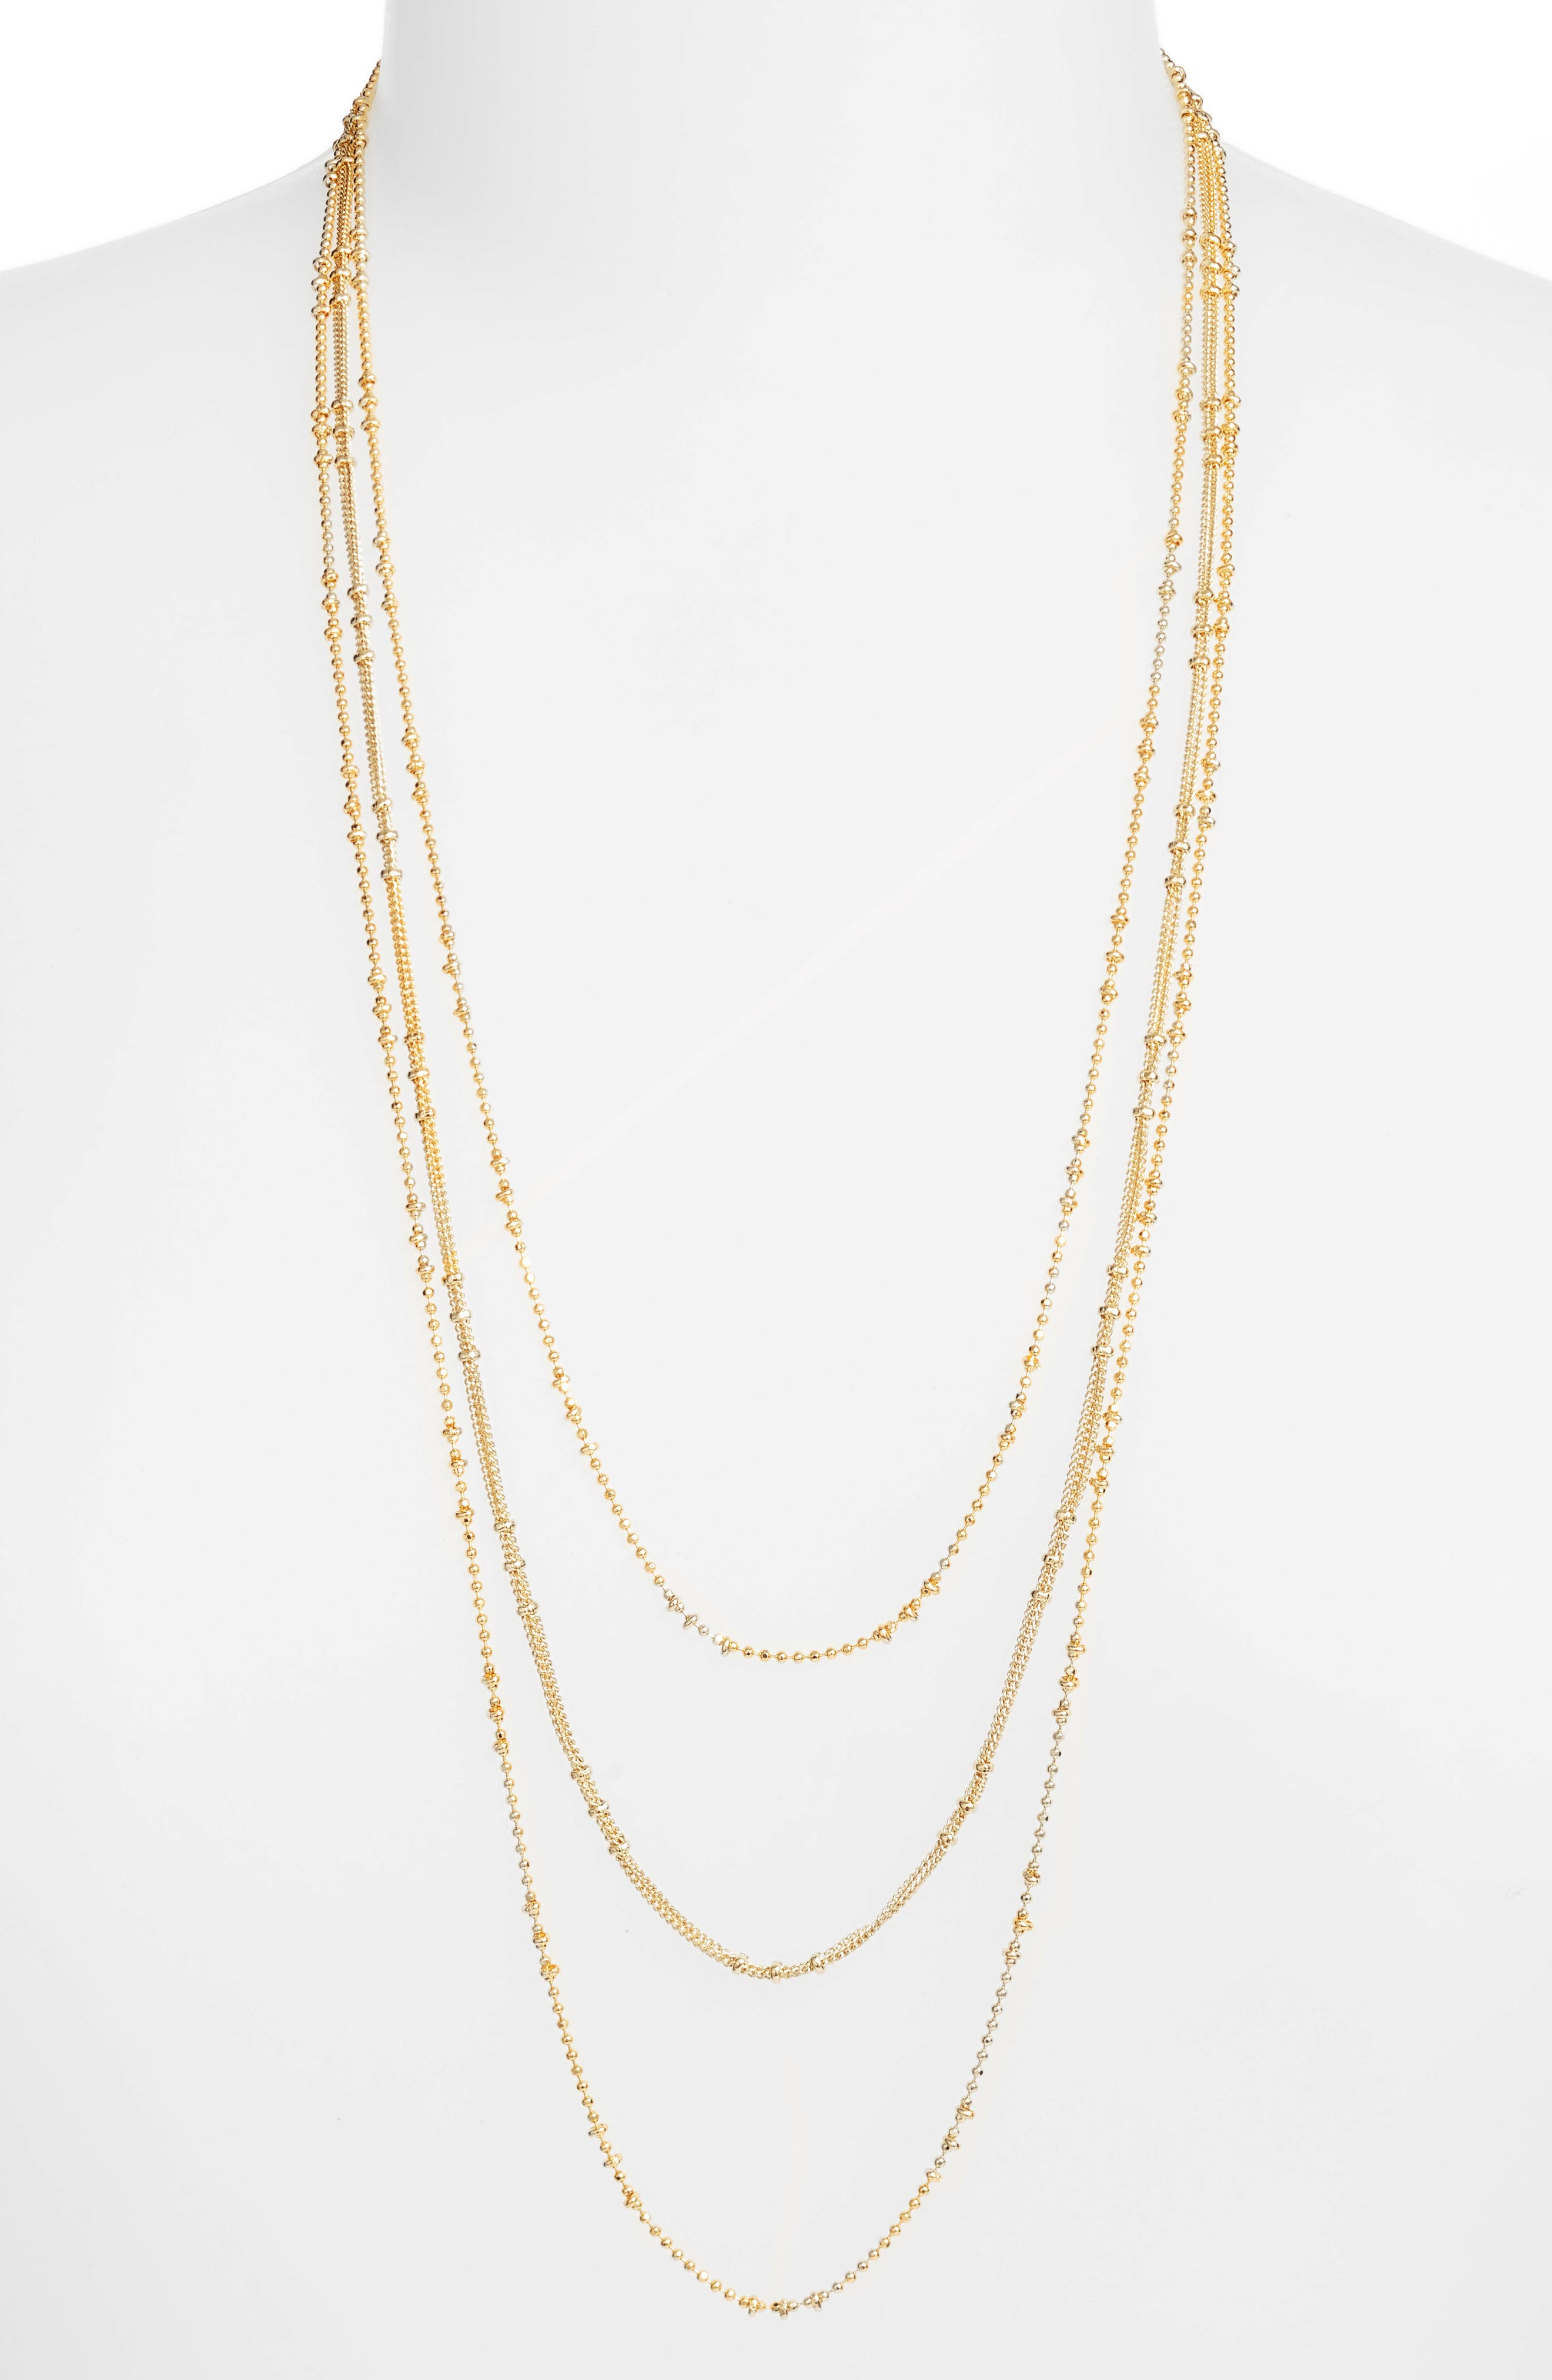 Margo 18K Layered Chain Necklace,                             Main thumbnail 1, color,                             Gold